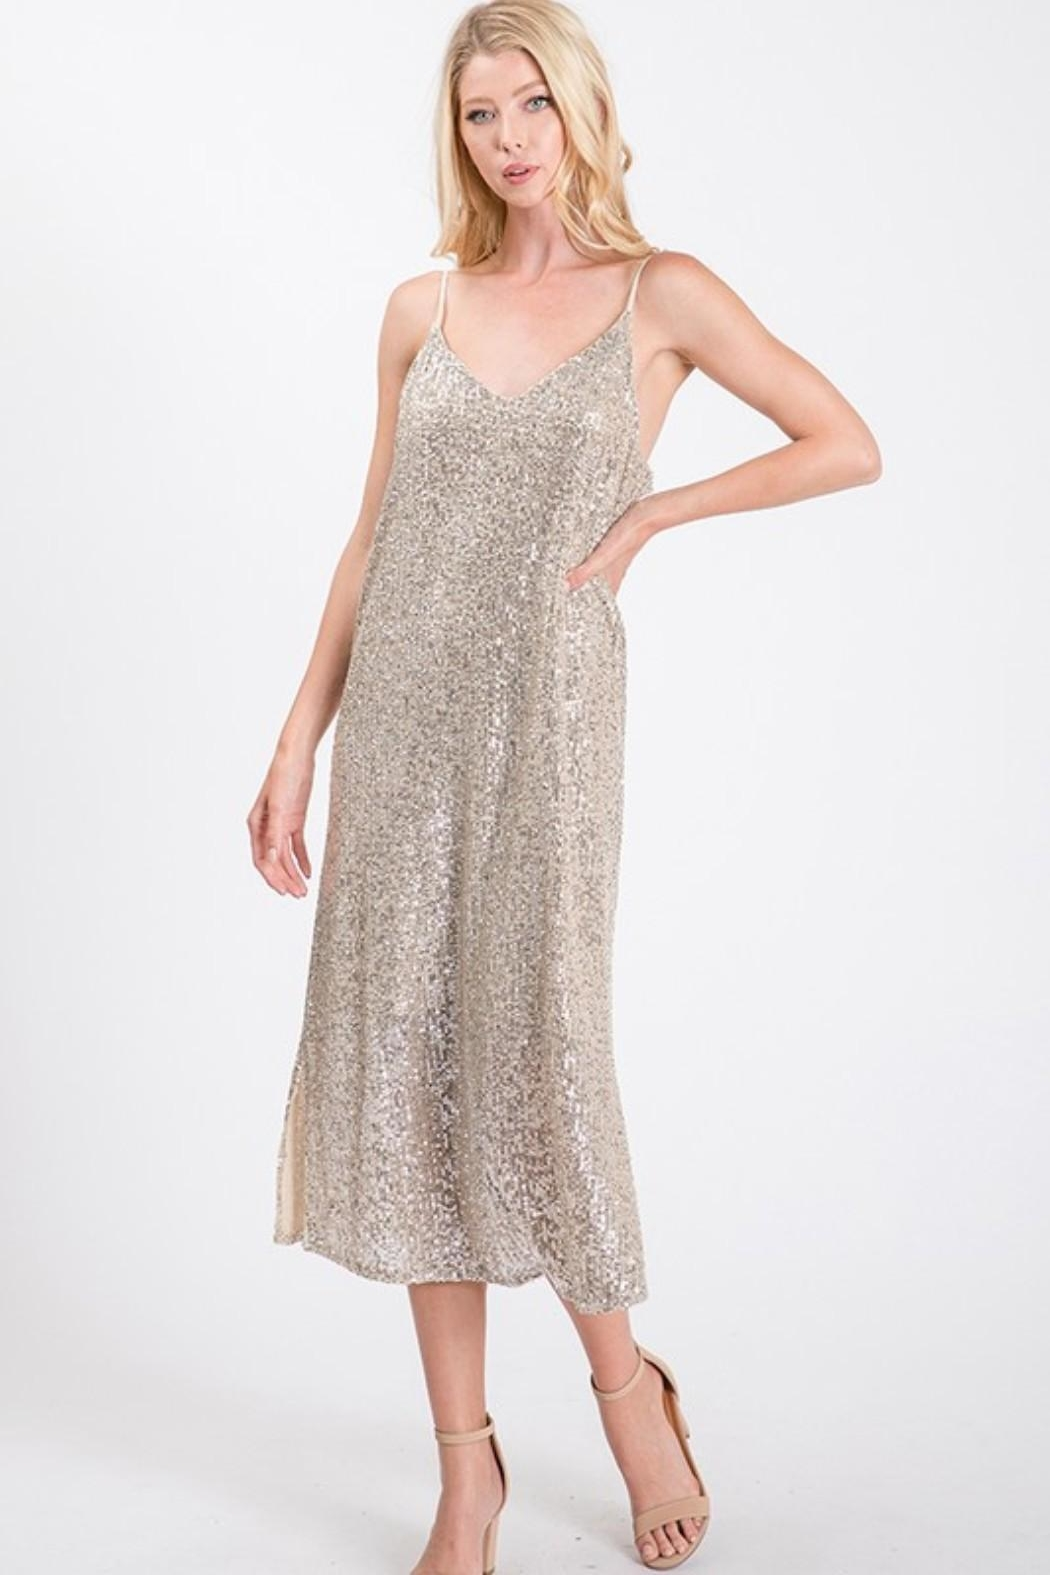 Ces Femme Champagne Sequin Dress - Main Image